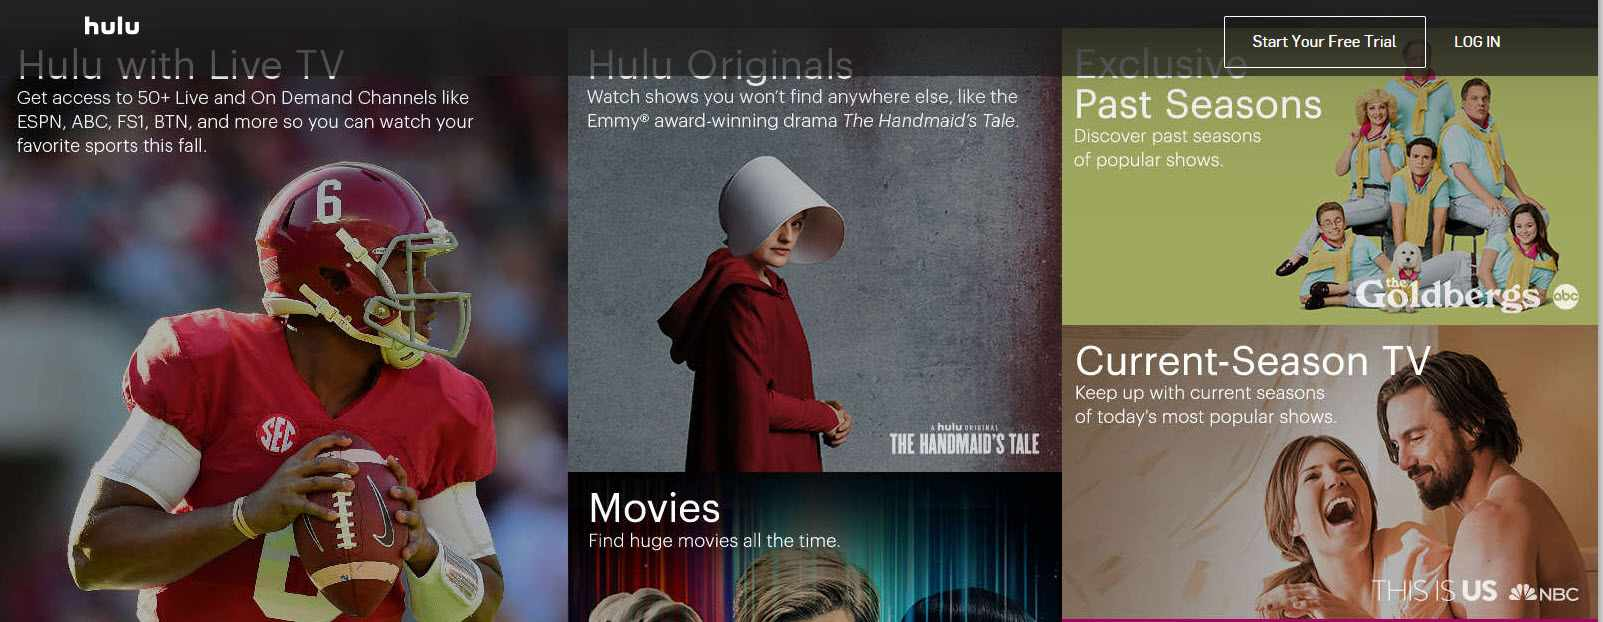 How to Download Movies on iPhone for Free? The Best Way Here